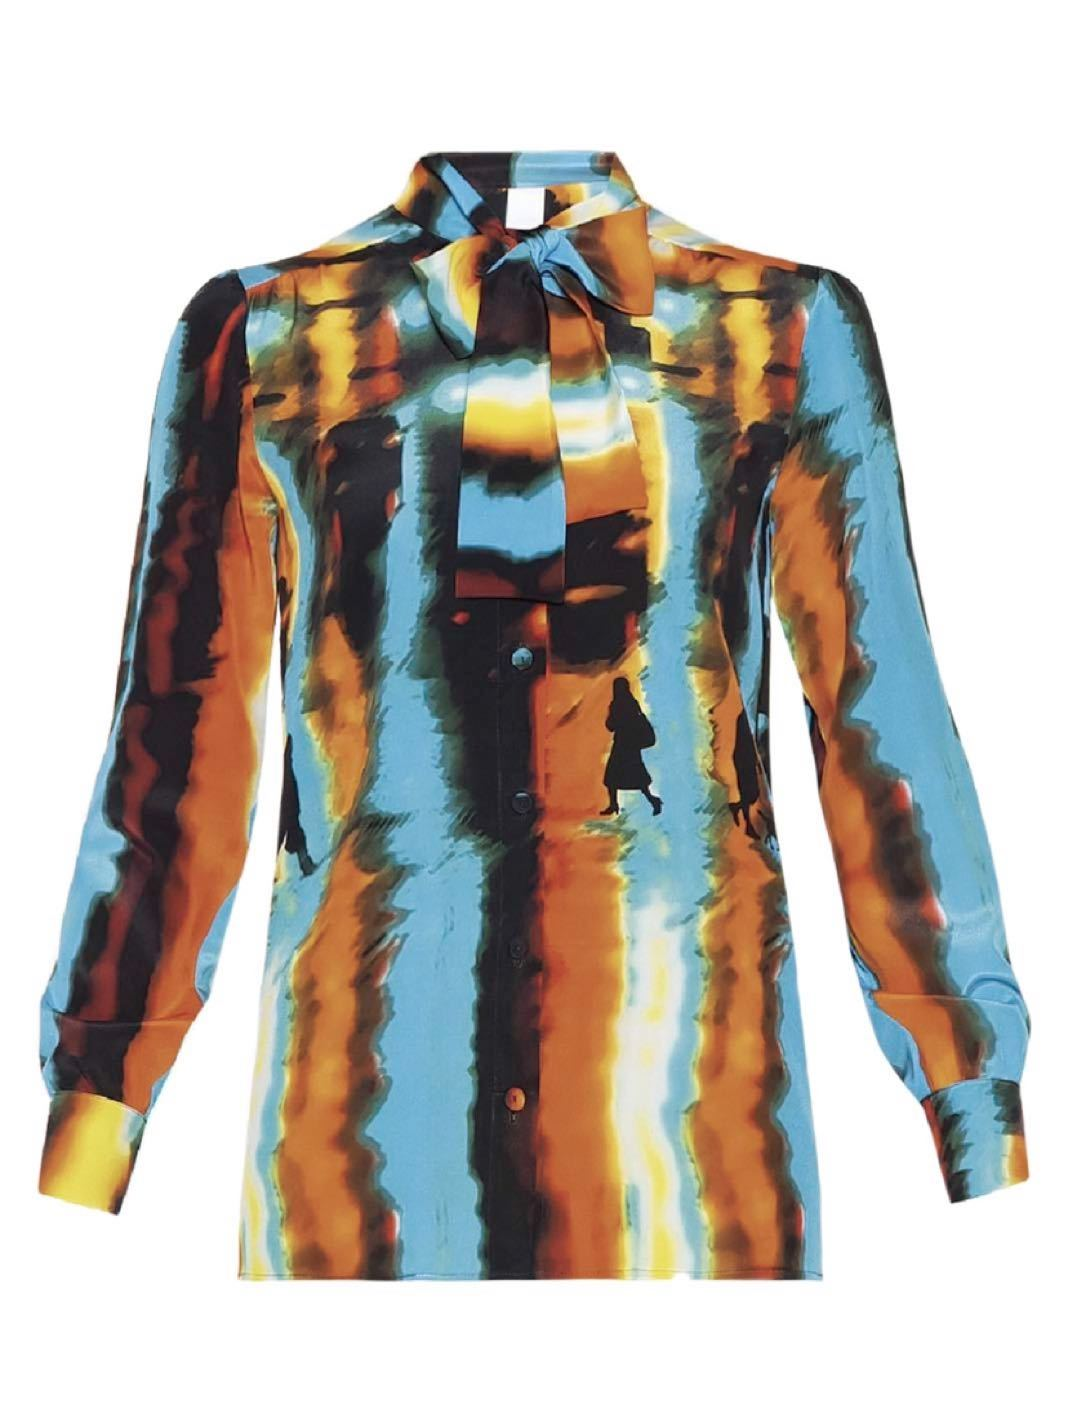 Rain Print Silk Shirt - The Bobby Boga